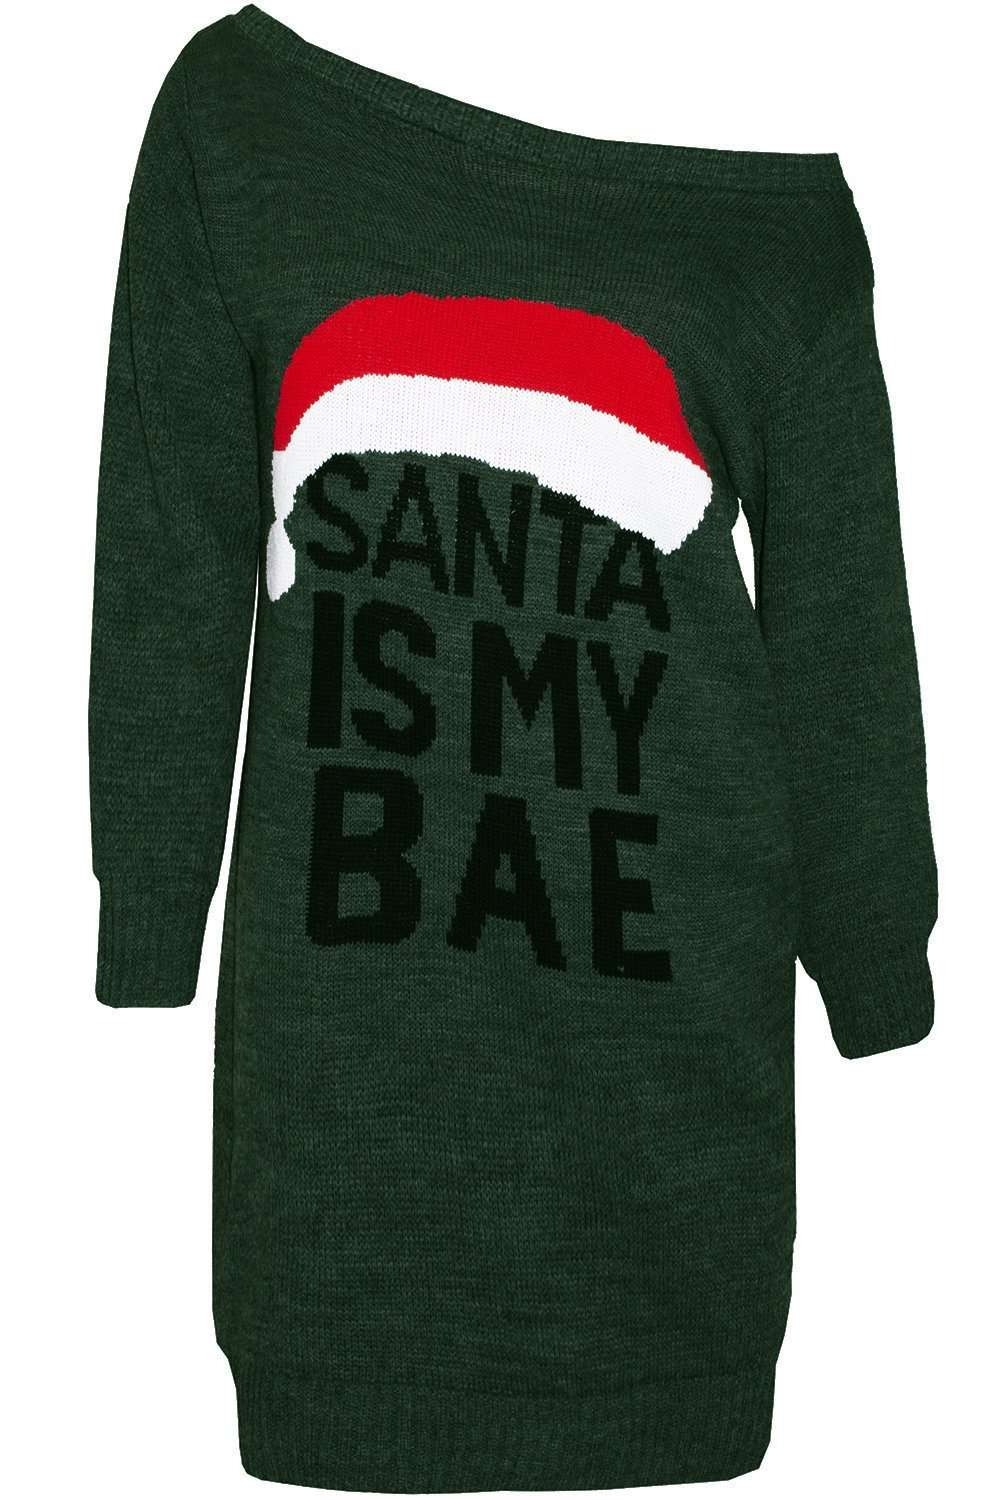 Santa Is My Bae Christmas Jumper Dress - bejealous-com